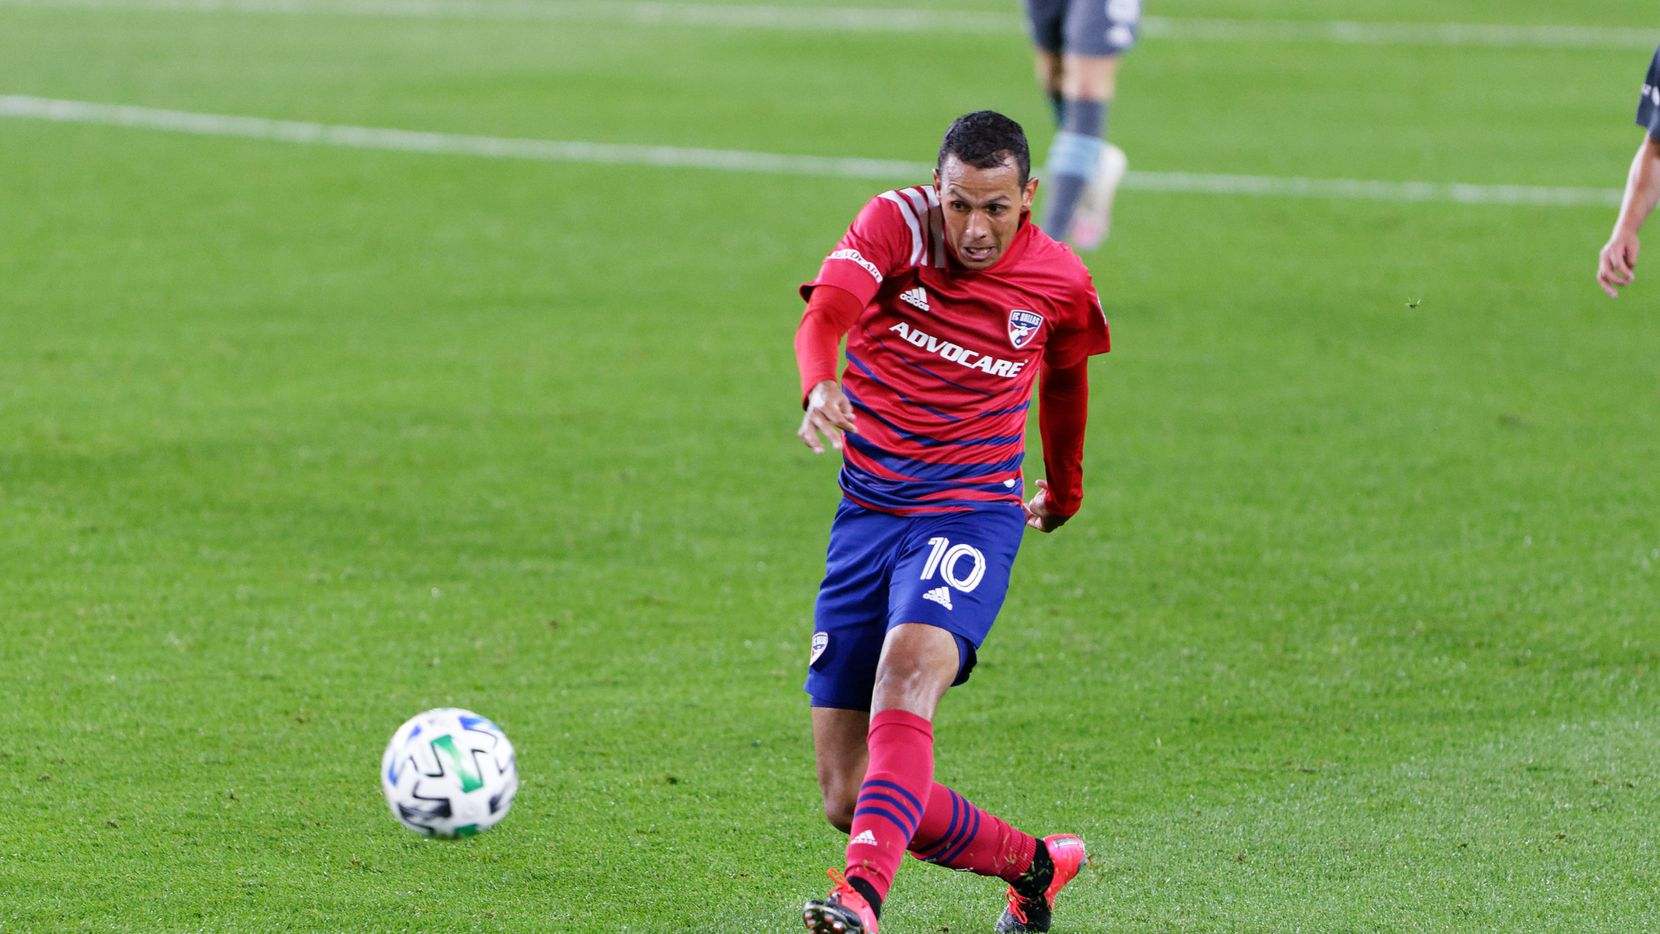 ST PAUL, MN - SEPTEMBER 9: Andres Ricaurte #10 of FC Dallas shoots the ball during a game between FC Dallas and Minnesota United FC at Allianz Field on September 9, 2020 in St Paul, Minnesota.